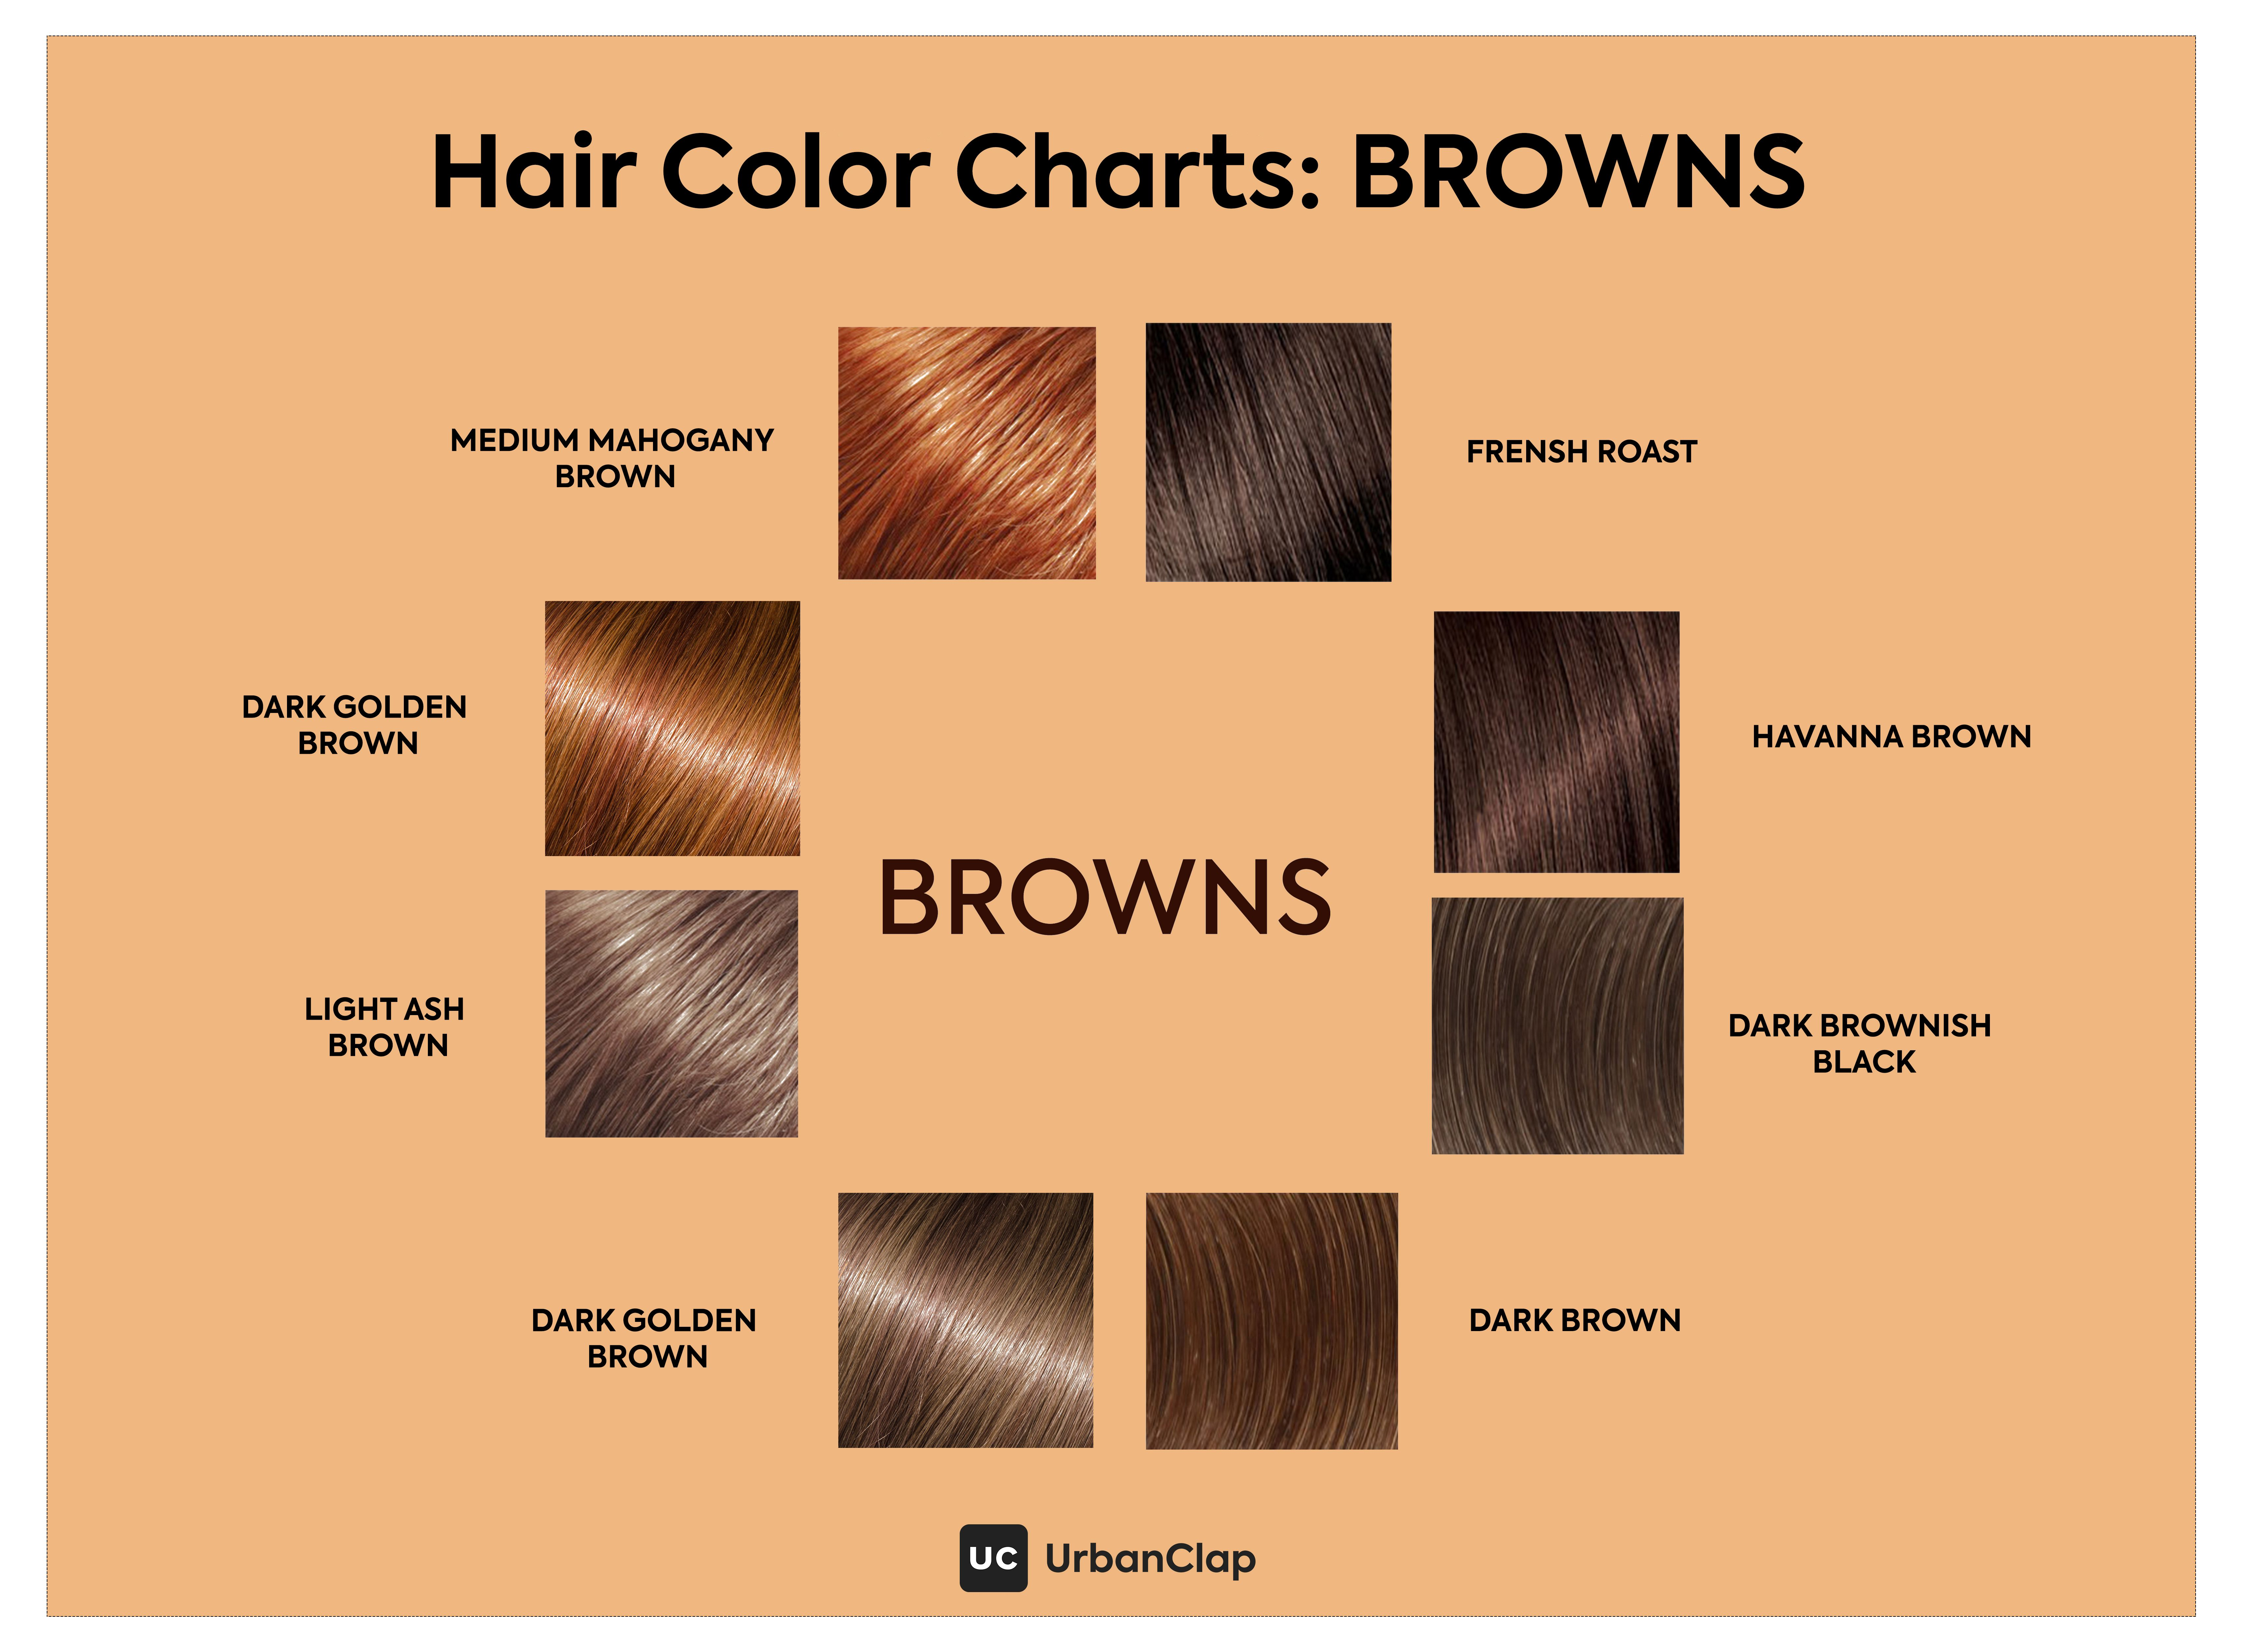 Find The Right Shade Of Brown Hair Colour For Glossy Brunette Locks In This Post Based On Your Skin Brown Hair Color Shades Hair Color Chart Hair Color Shades